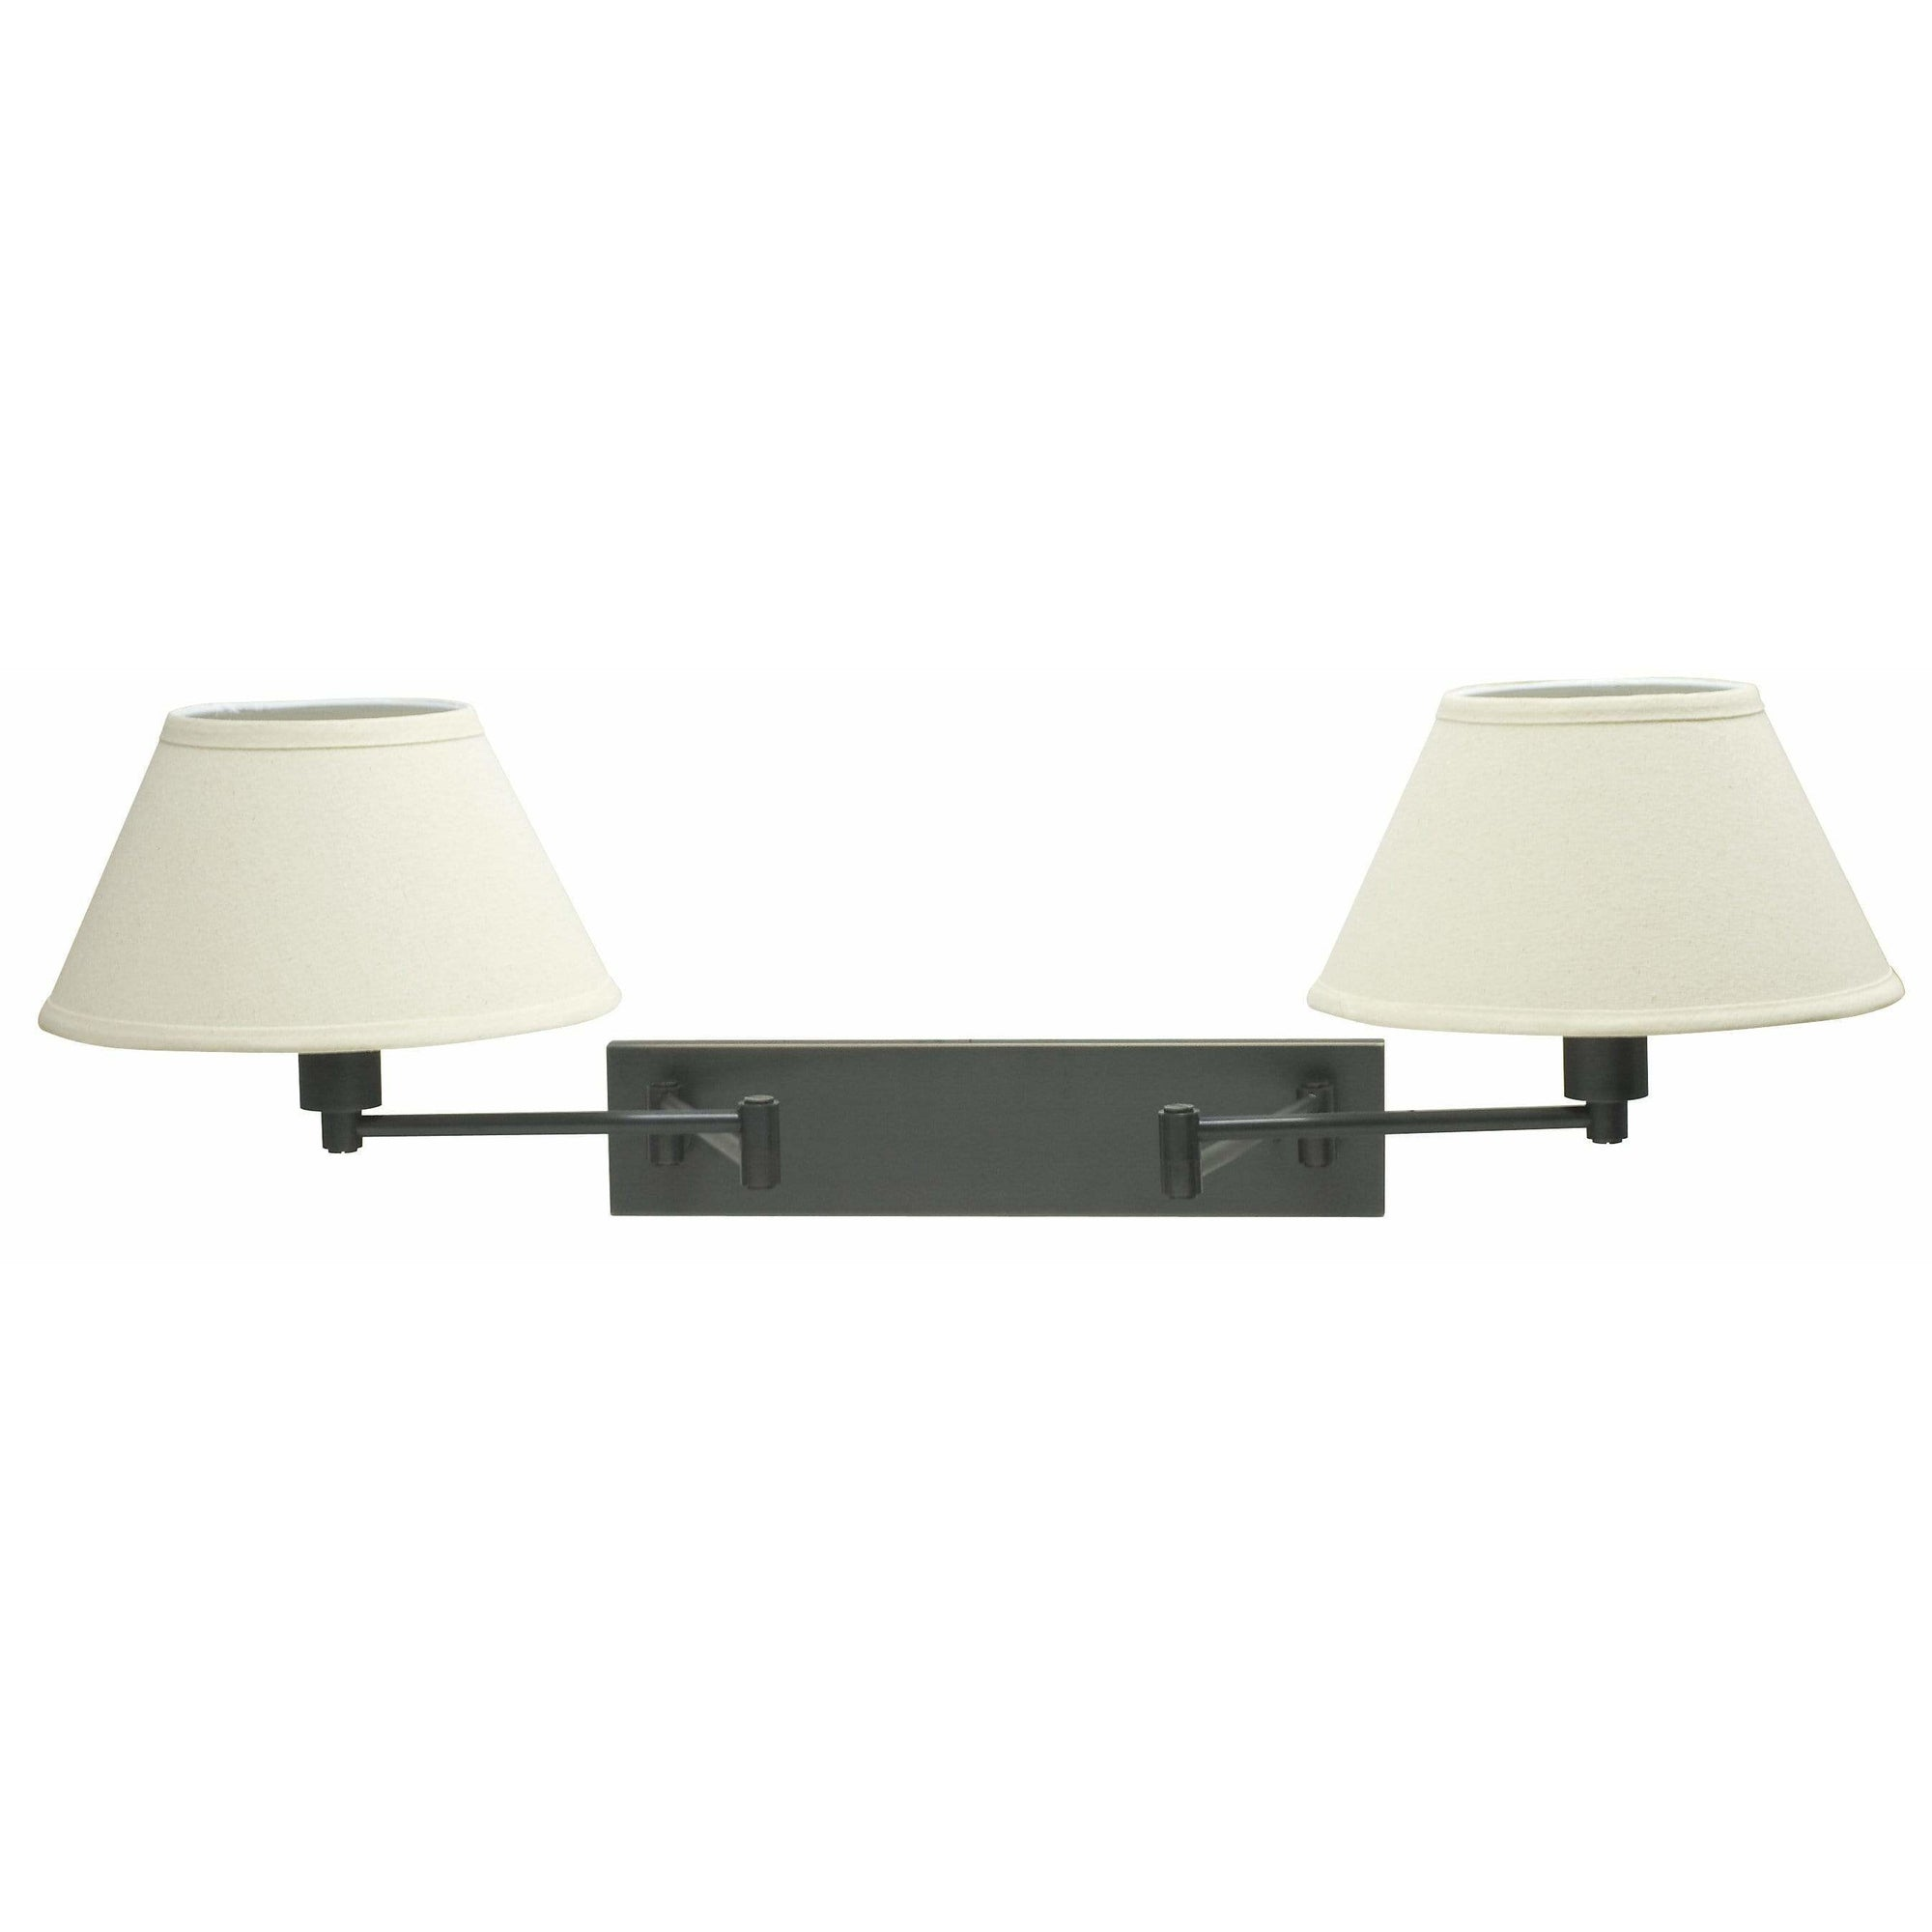 House Of Troy Wall Lamps Home Office Pharmacy Swing Arm Wall Lamp by House Of Troy WS14-2-91